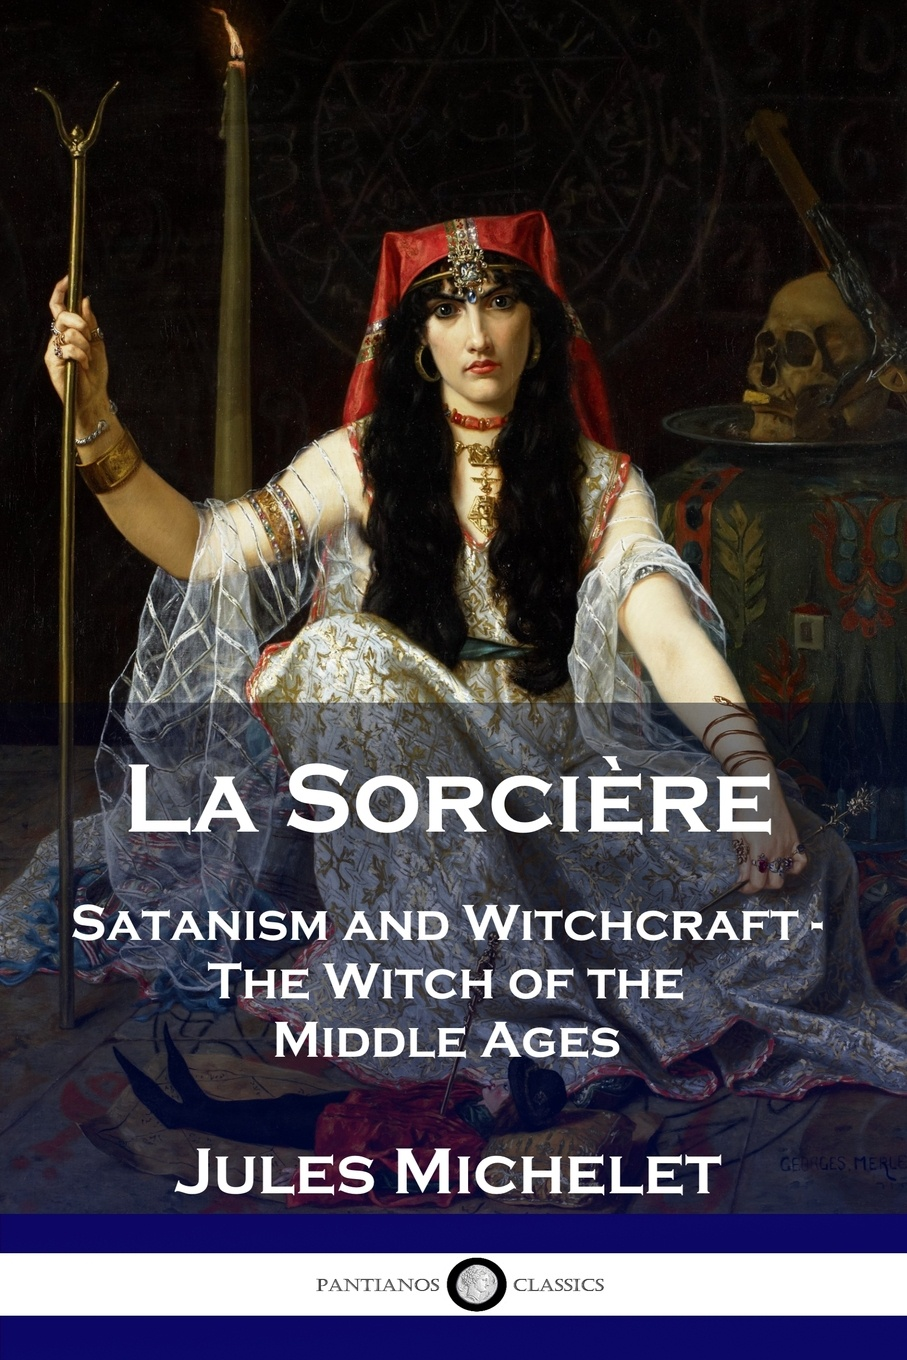 La Sorciere. Satanism and Witchcraft - The Witch of the Middle Ages